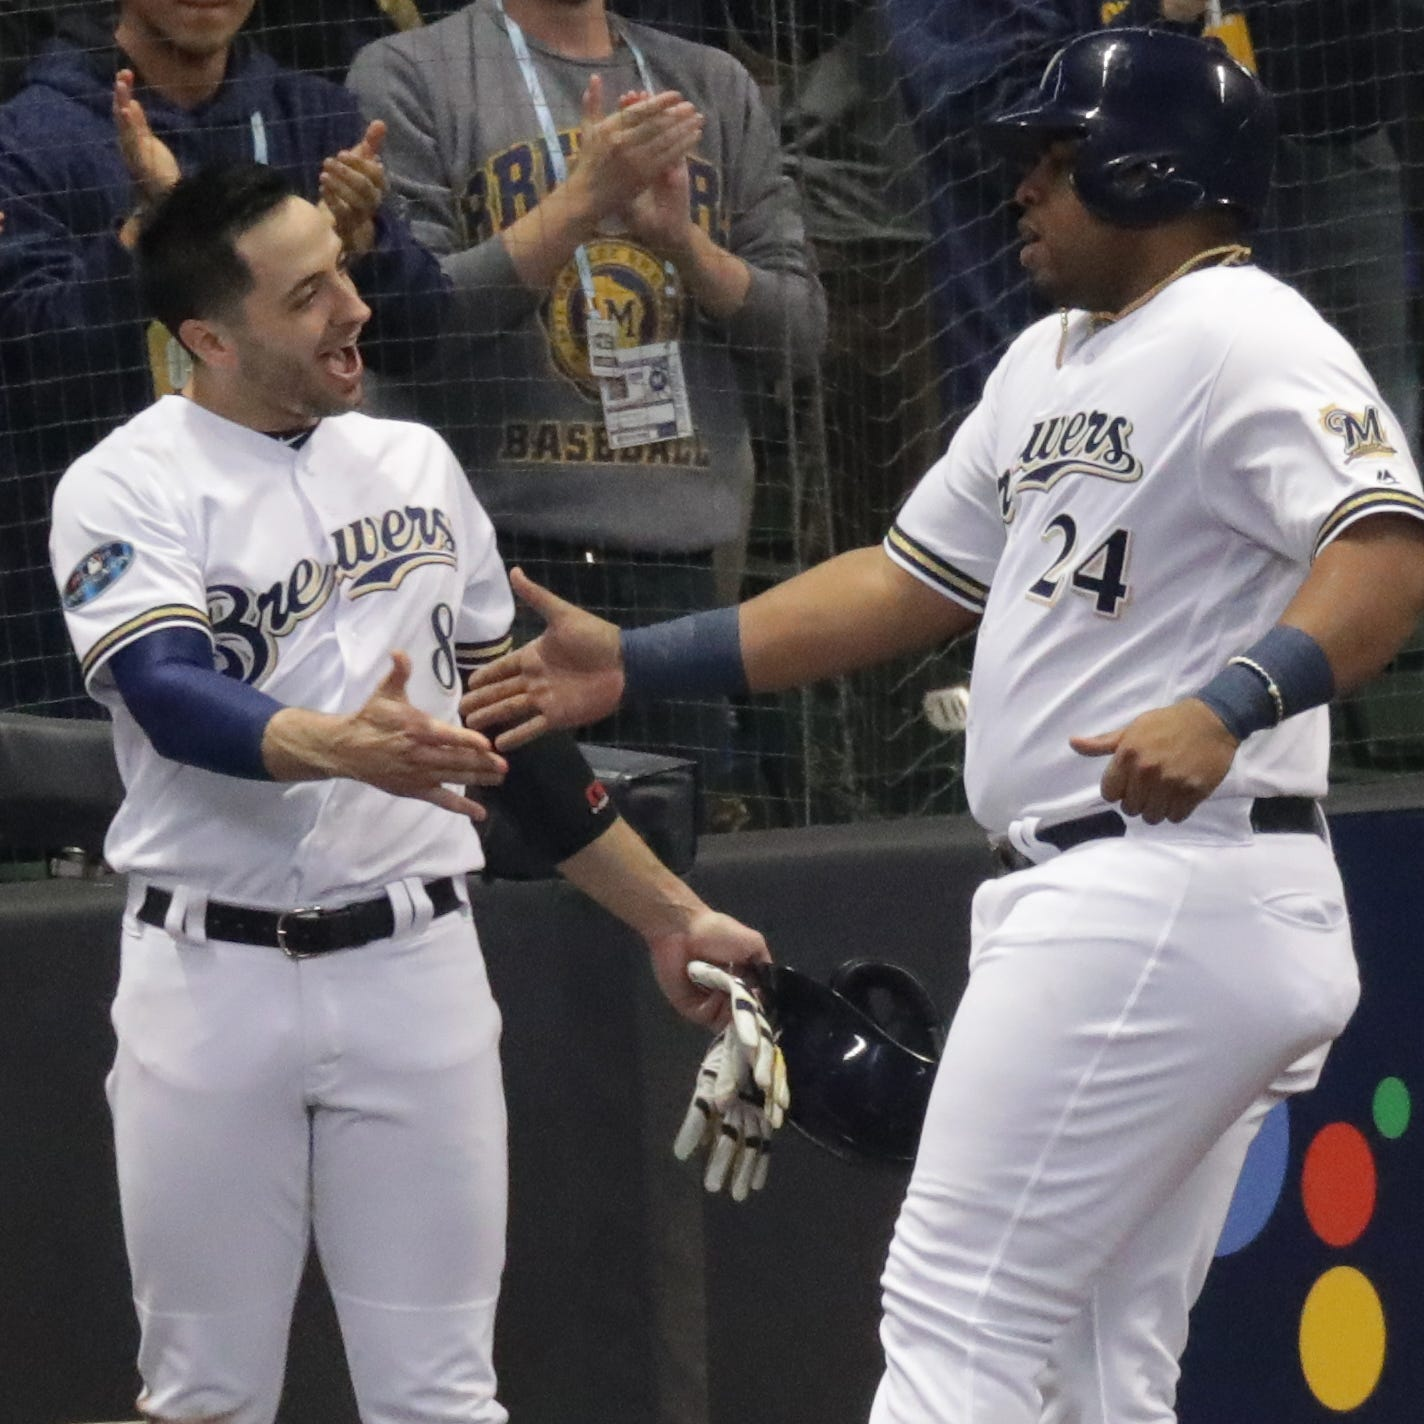 Brewers first baseman Jesus Aguilar is greeted by Ryan Braun after he scored in the first inning.